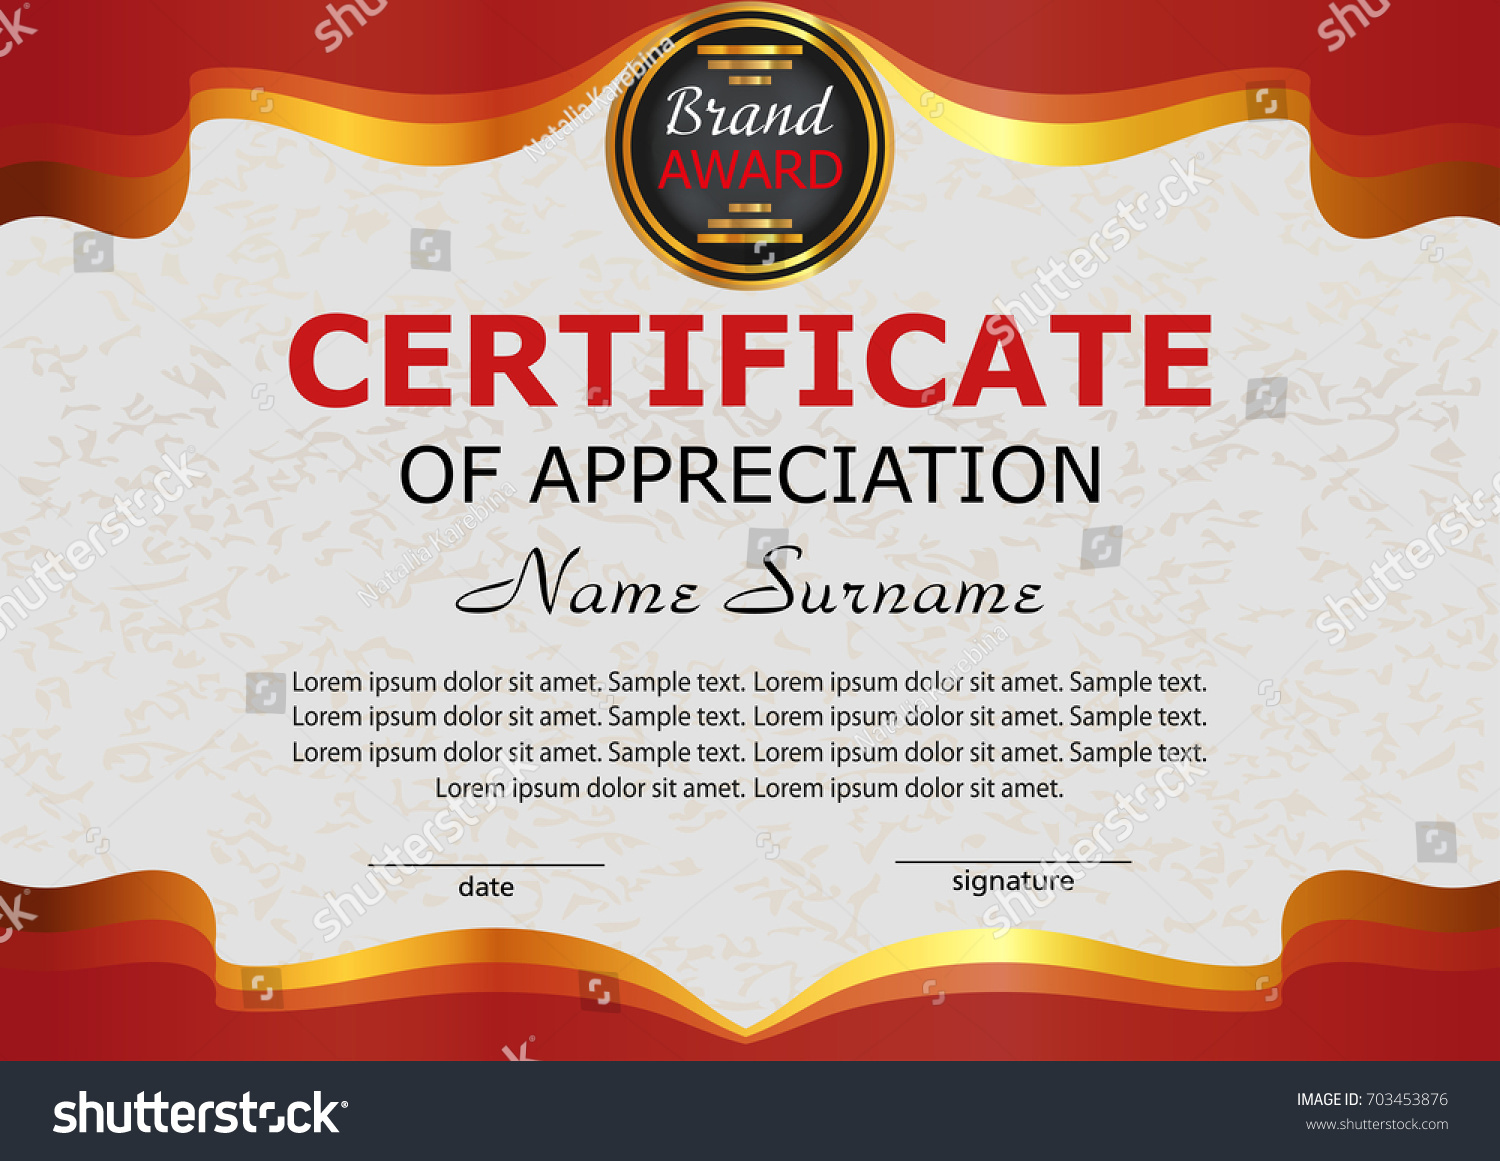 Certificate of appreciation sample wording examples of executive teacher appreciation certificates bio example business email stock vector certificate appreciation elegant red template reward winning yadclub Images